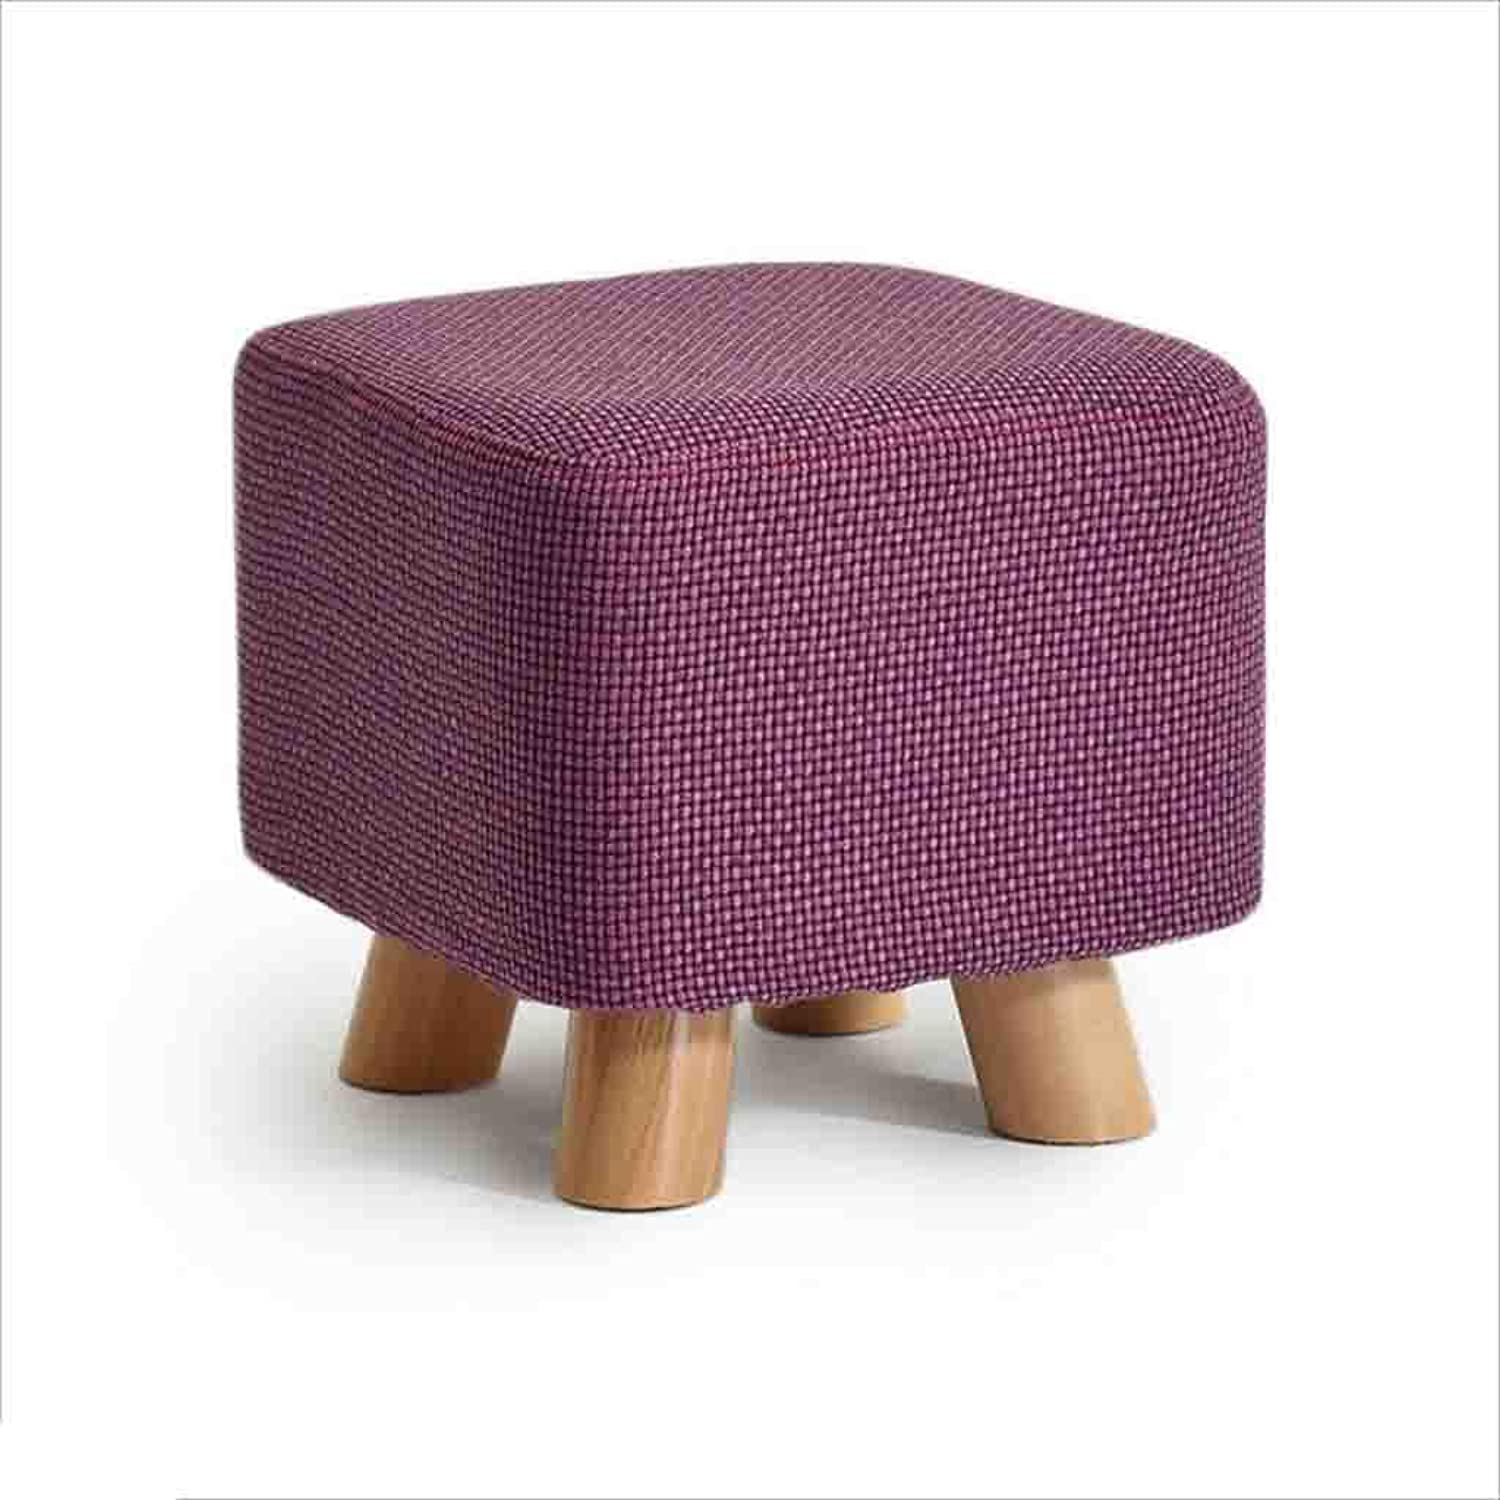 QZ HOME Stool Solid Wood Frame Natural Cotton Quadrilateral Monochrome Stool Can Wash Household Sofa Stool (color   Green)